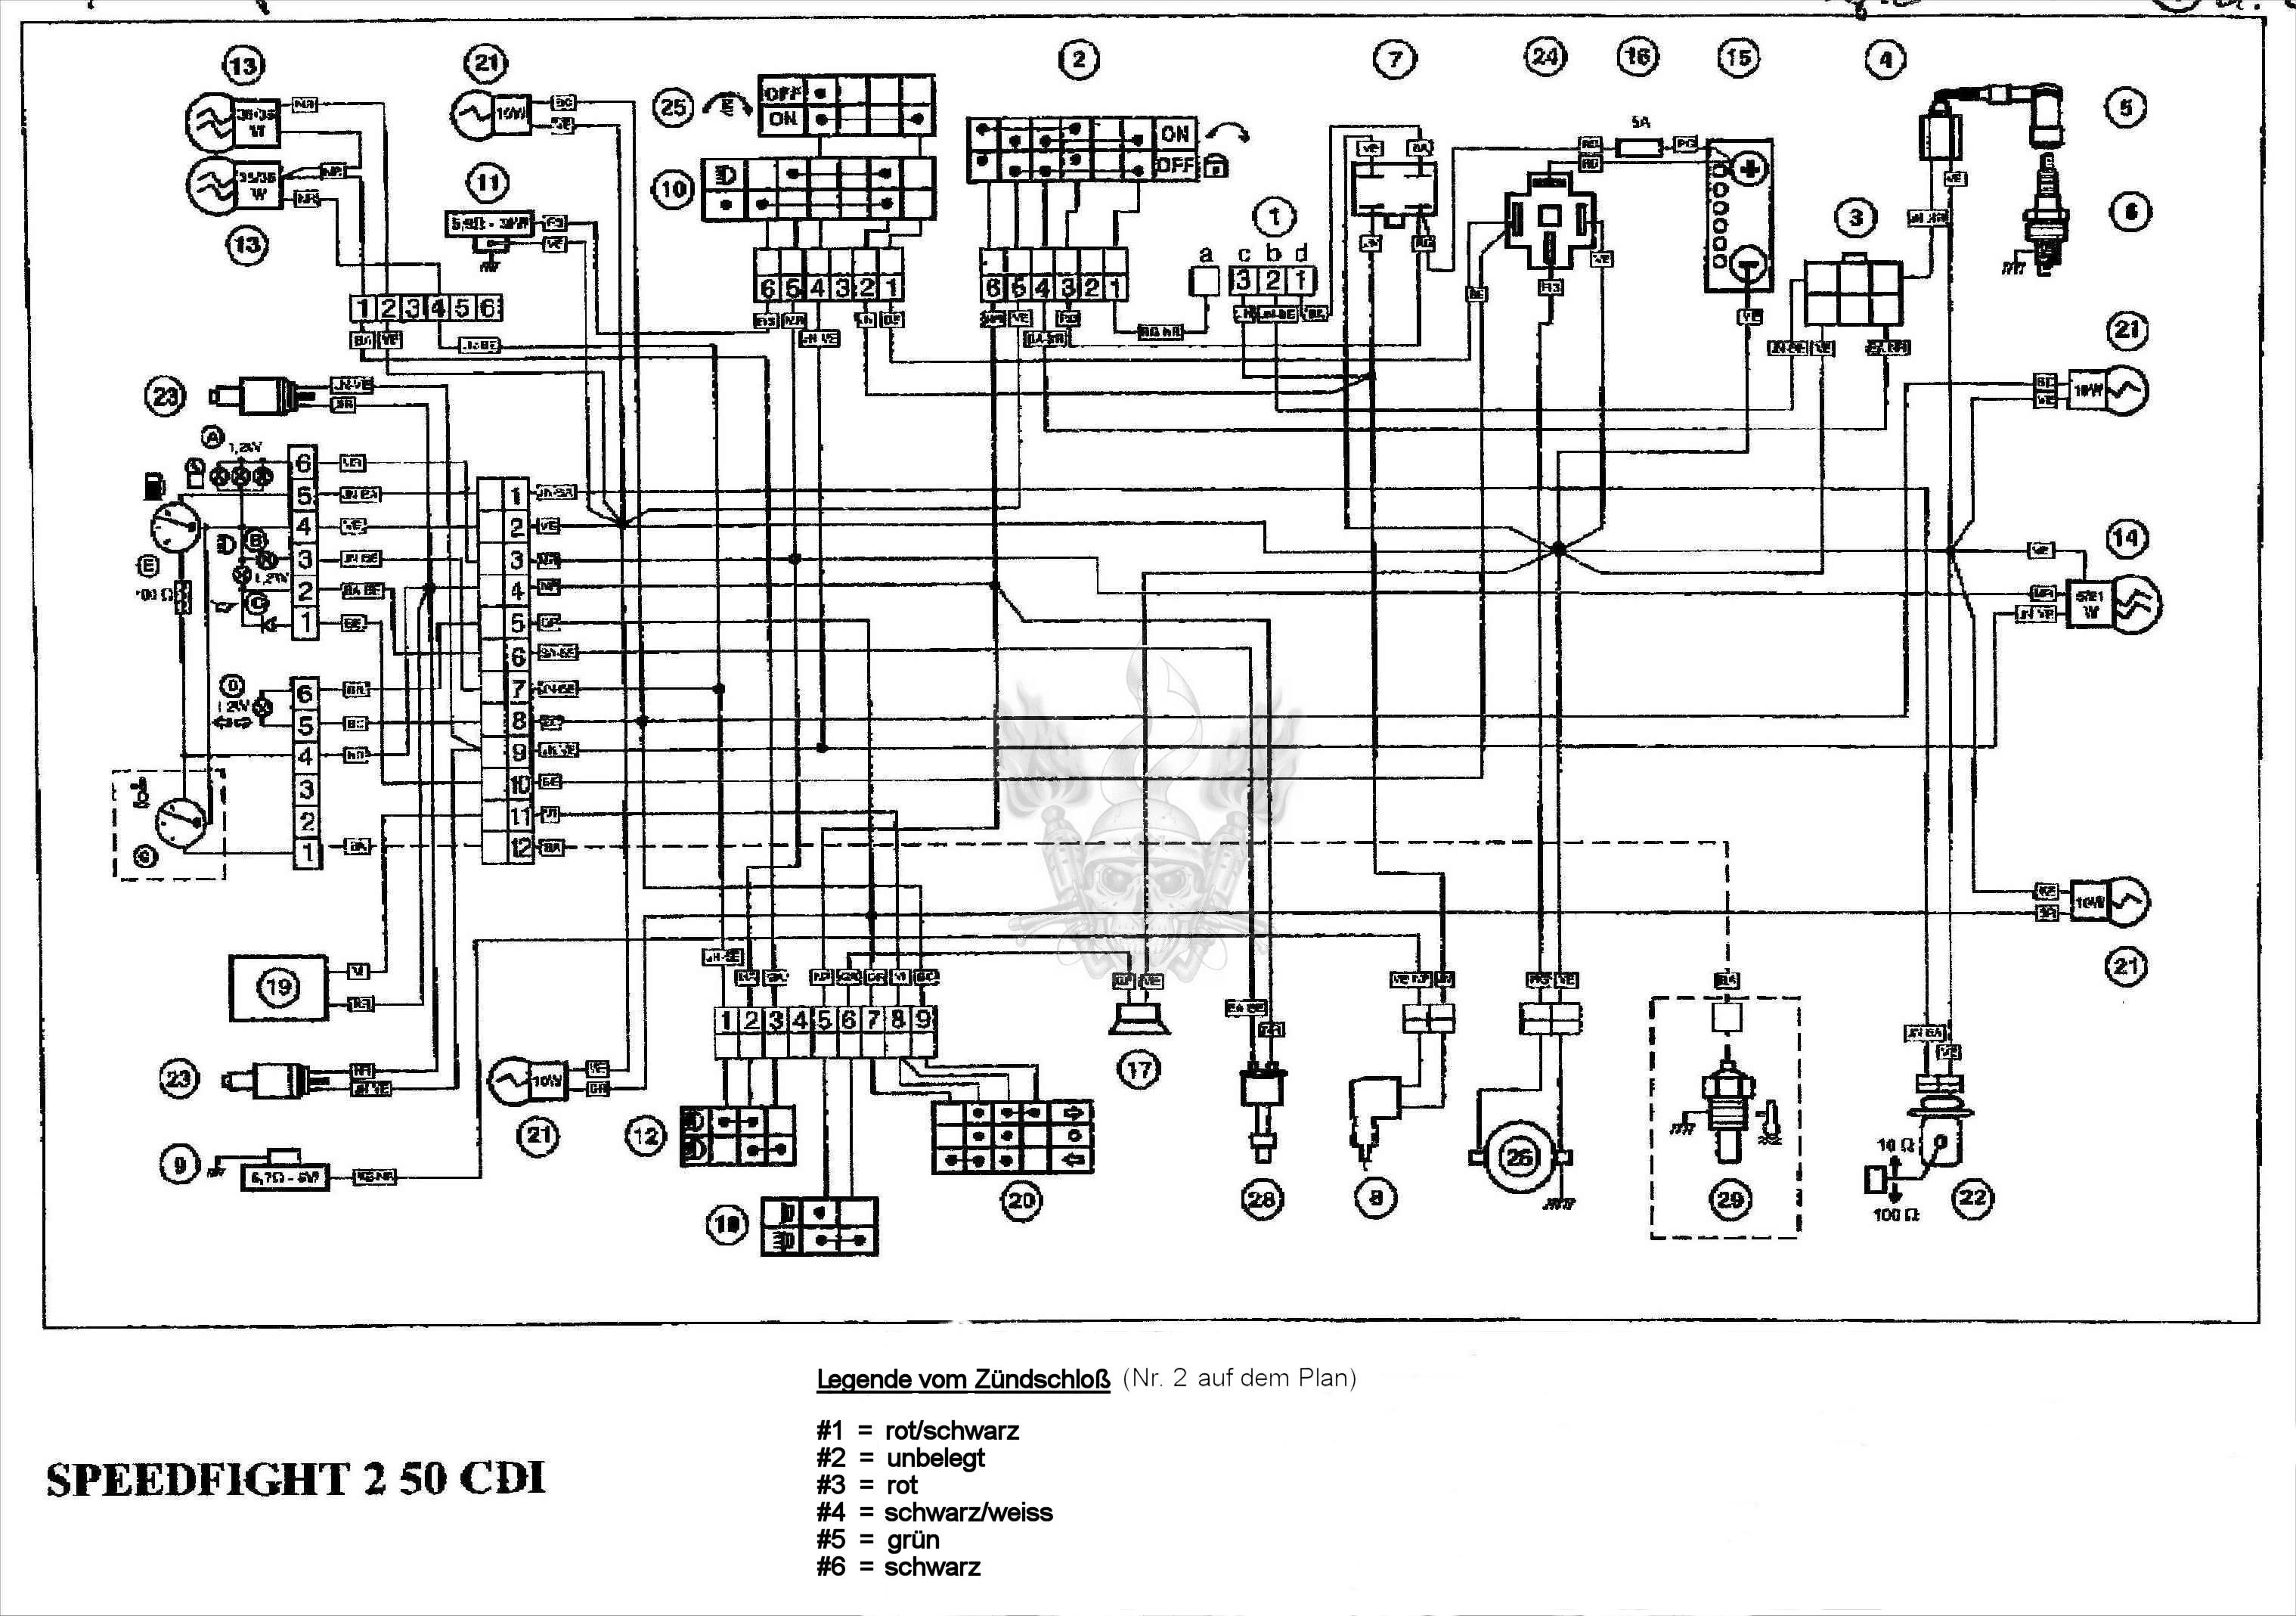 Sunny 150cc Wiring Diagram All Kind Of Diagrams Atv Jonway 49cc Gy6 Scooter Engine Odicis Quad